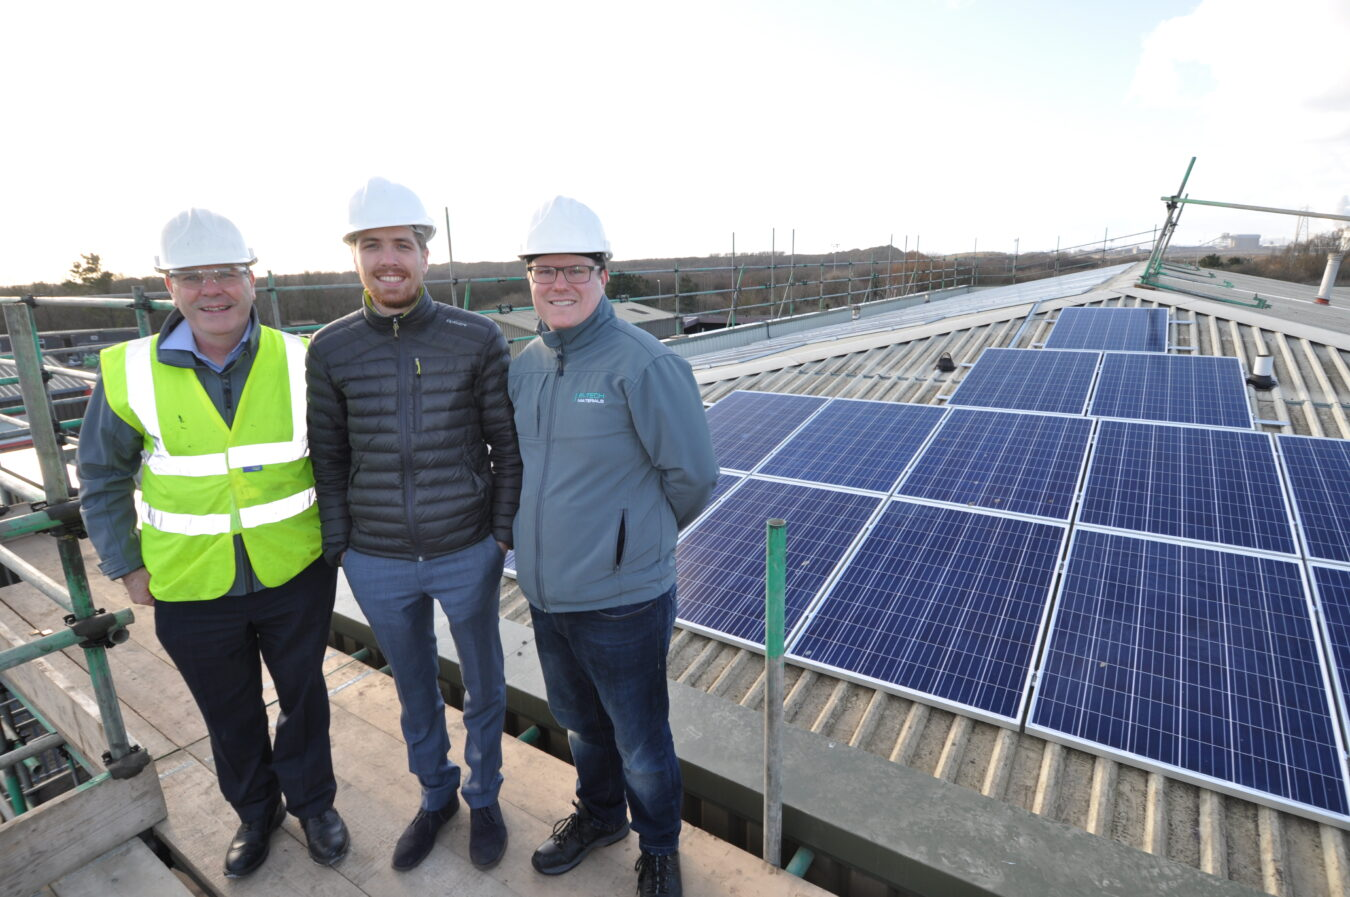 Solar PV from Ineco Energy on the roof at R-Tech Materials